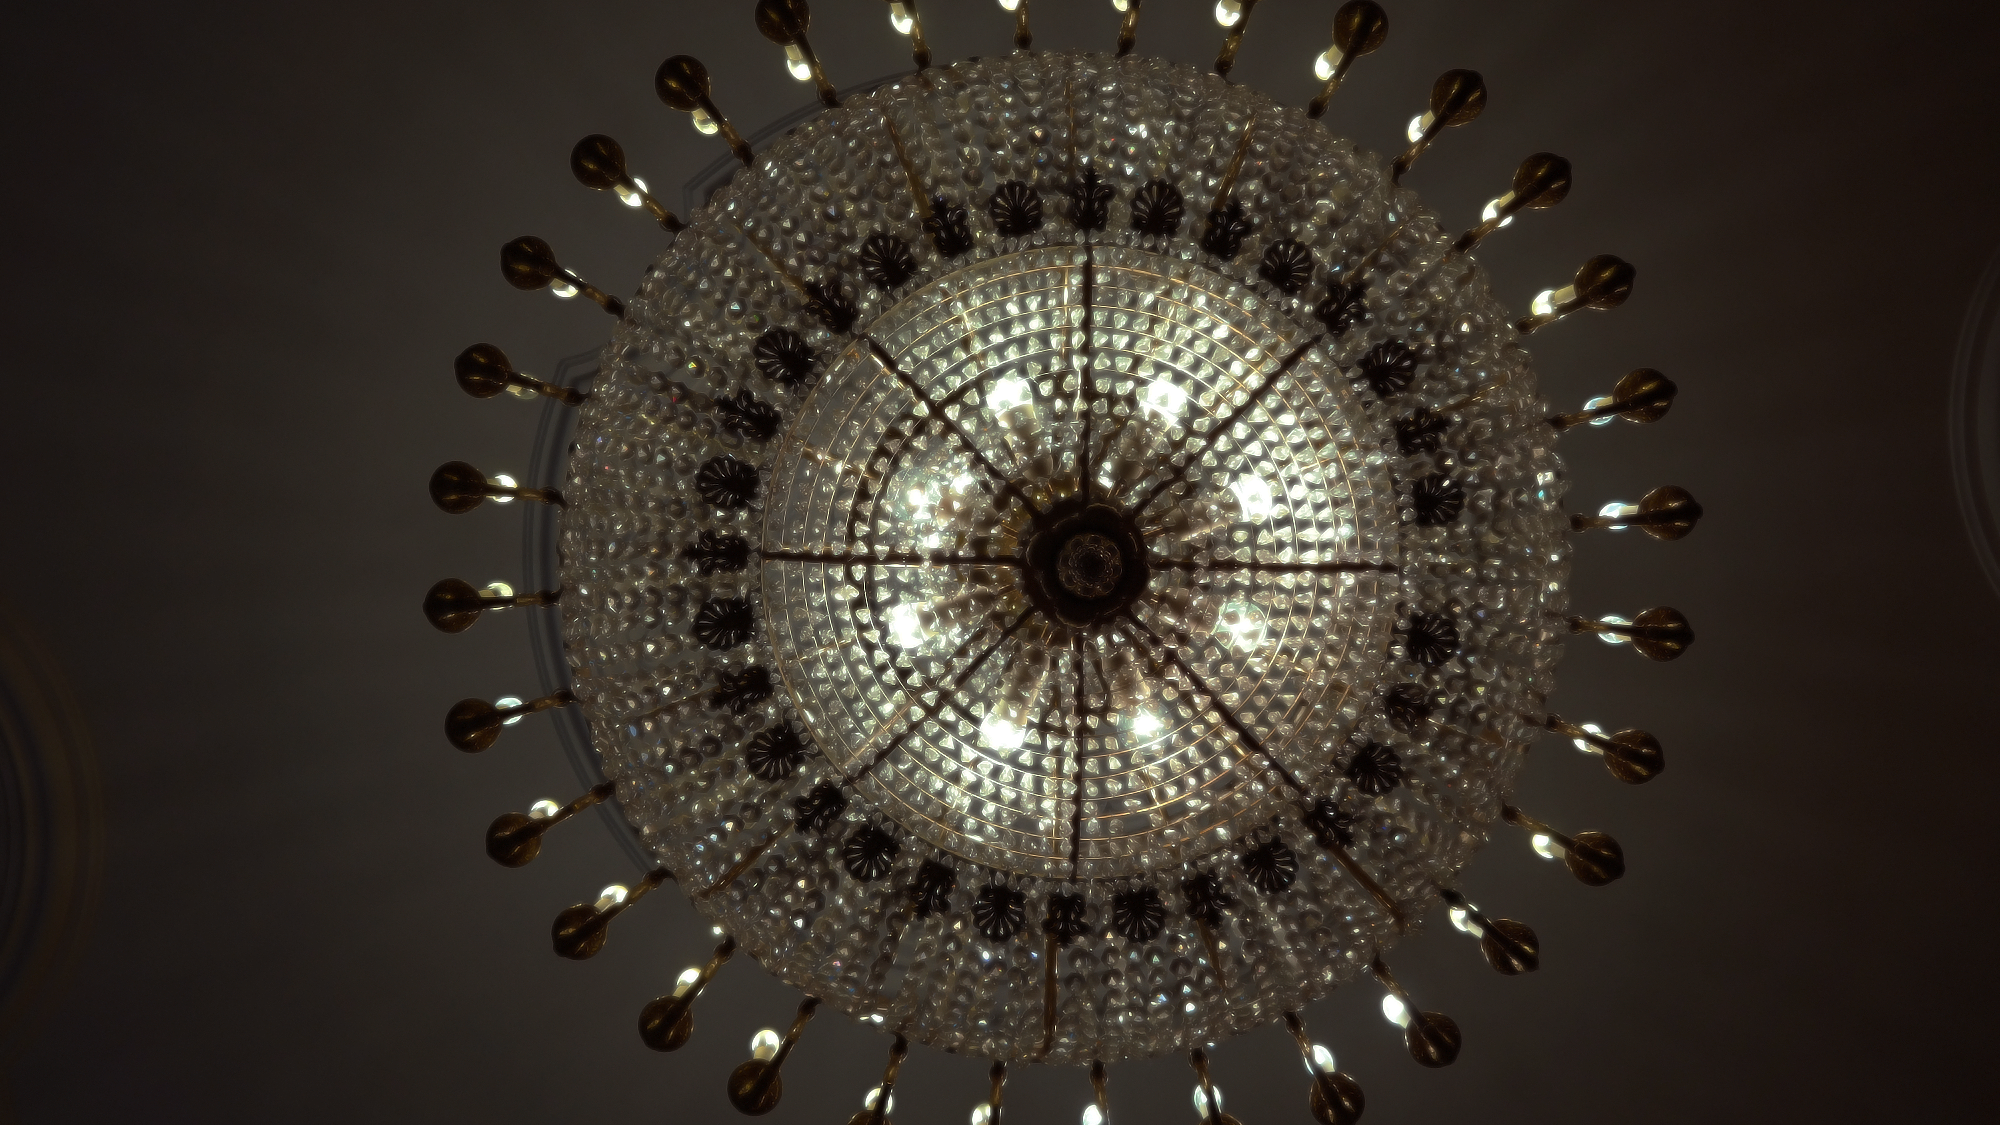 Chandelier-1920x1080-Need-iPhone-S-Plus-Background-for-IPhoneSPlus-Follow-iPho-wallpaper-wpc9003417